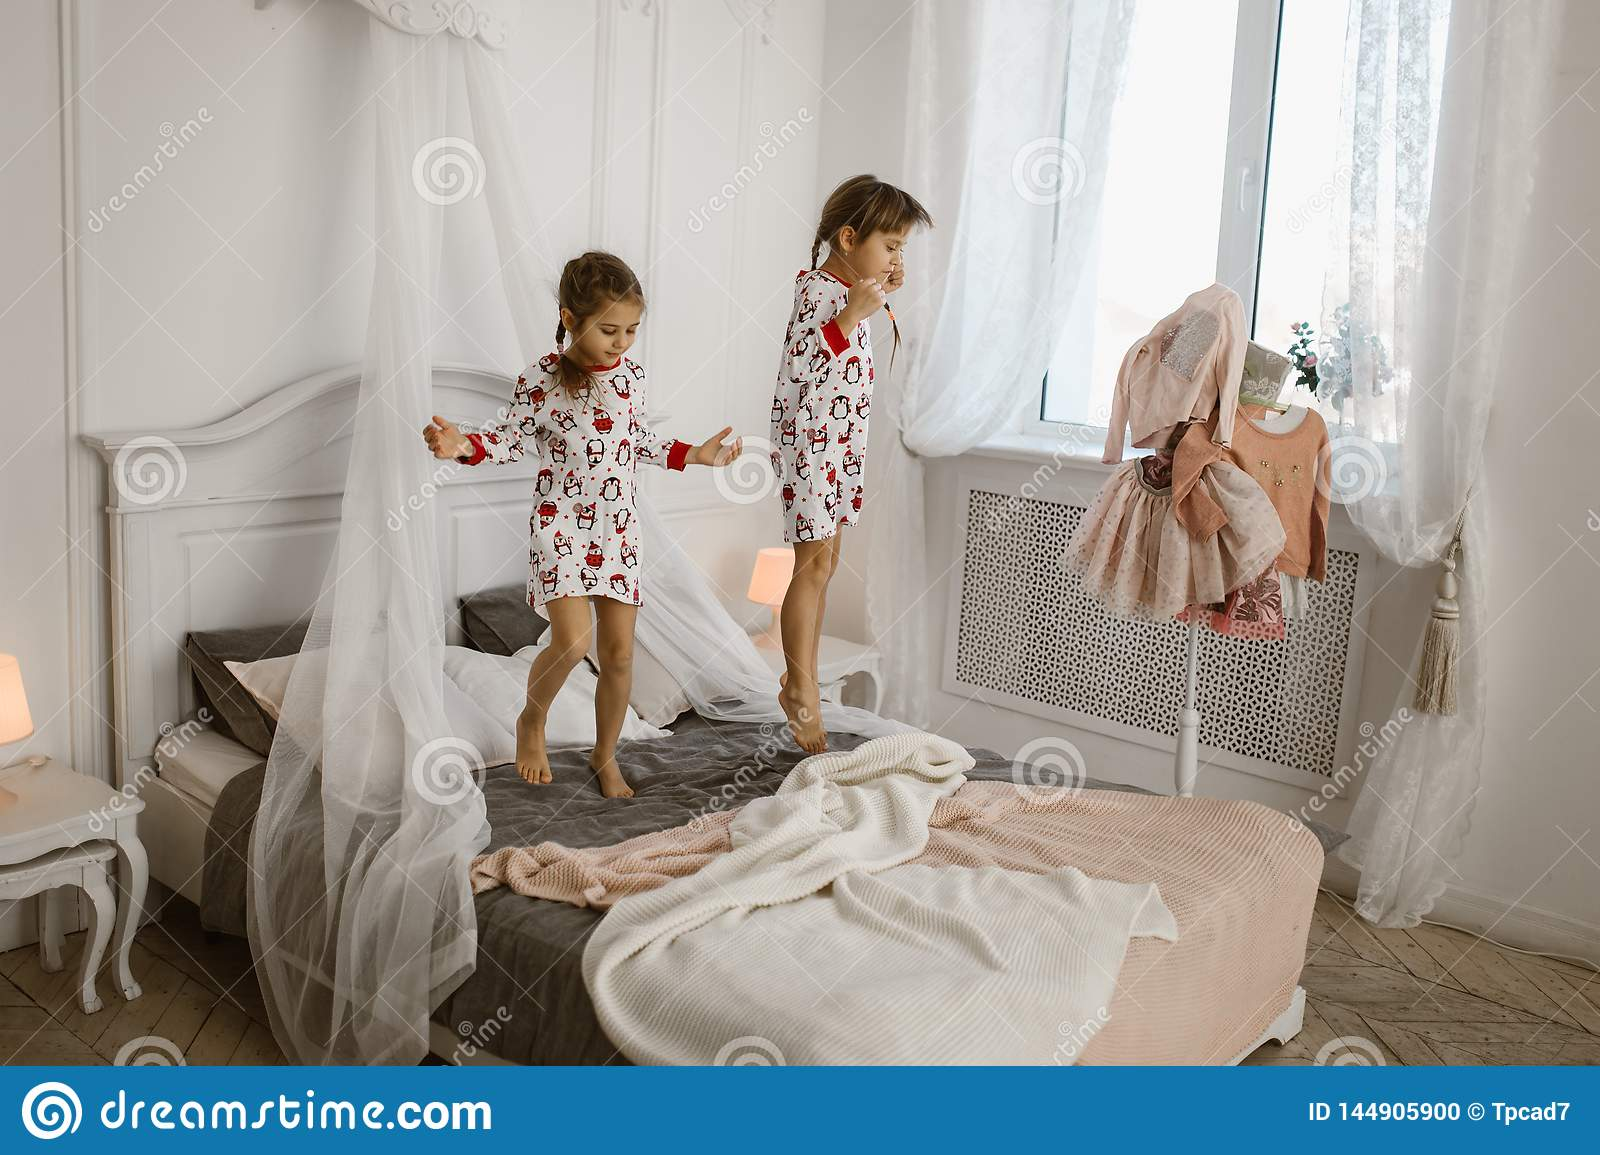 Two Little Girls In Their Pajamas Are Having Fun Jumping On A Bed In A Sunlit Cozy Bedroom Stock Photo Image Of Cute Celebration 144905900